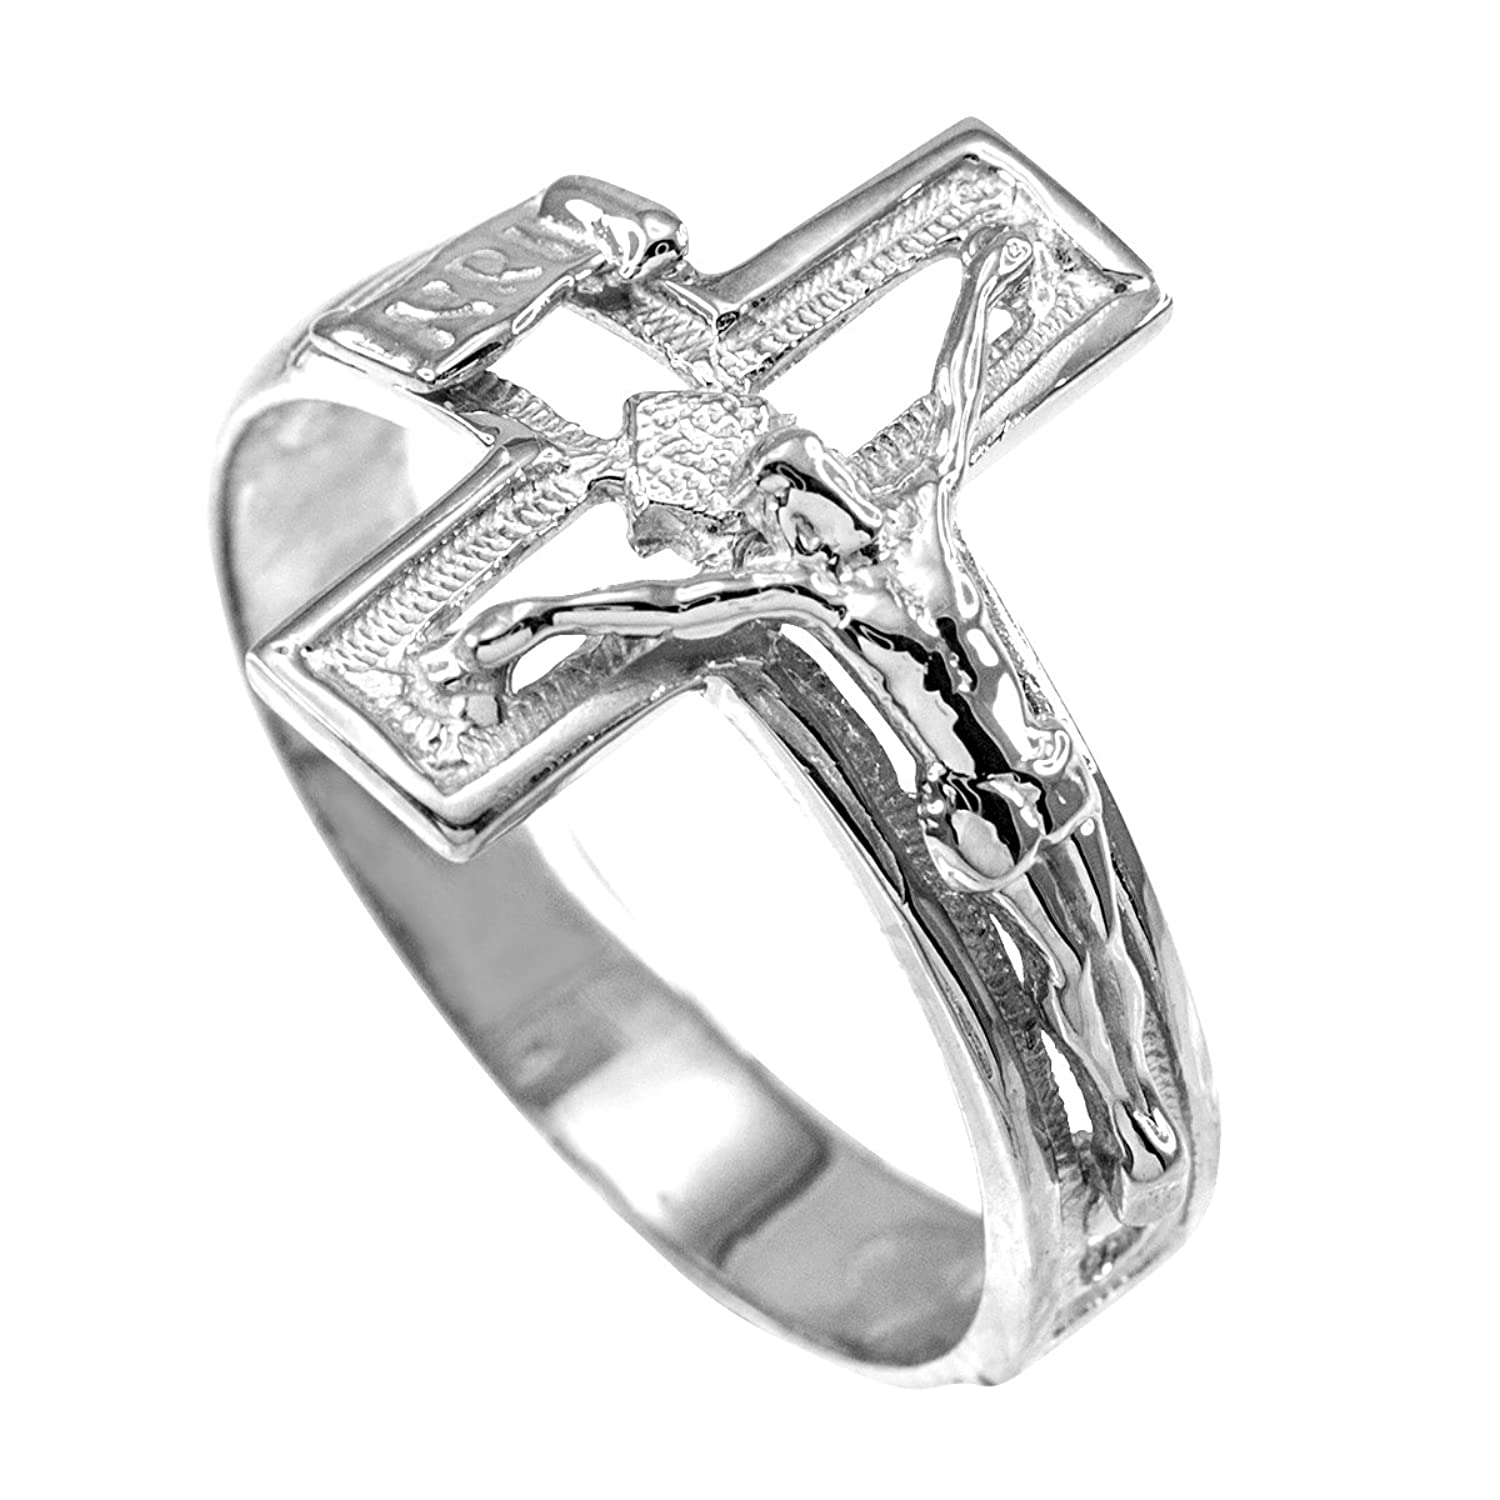 rings img diane serrano andres venet jewelry crucifix ring